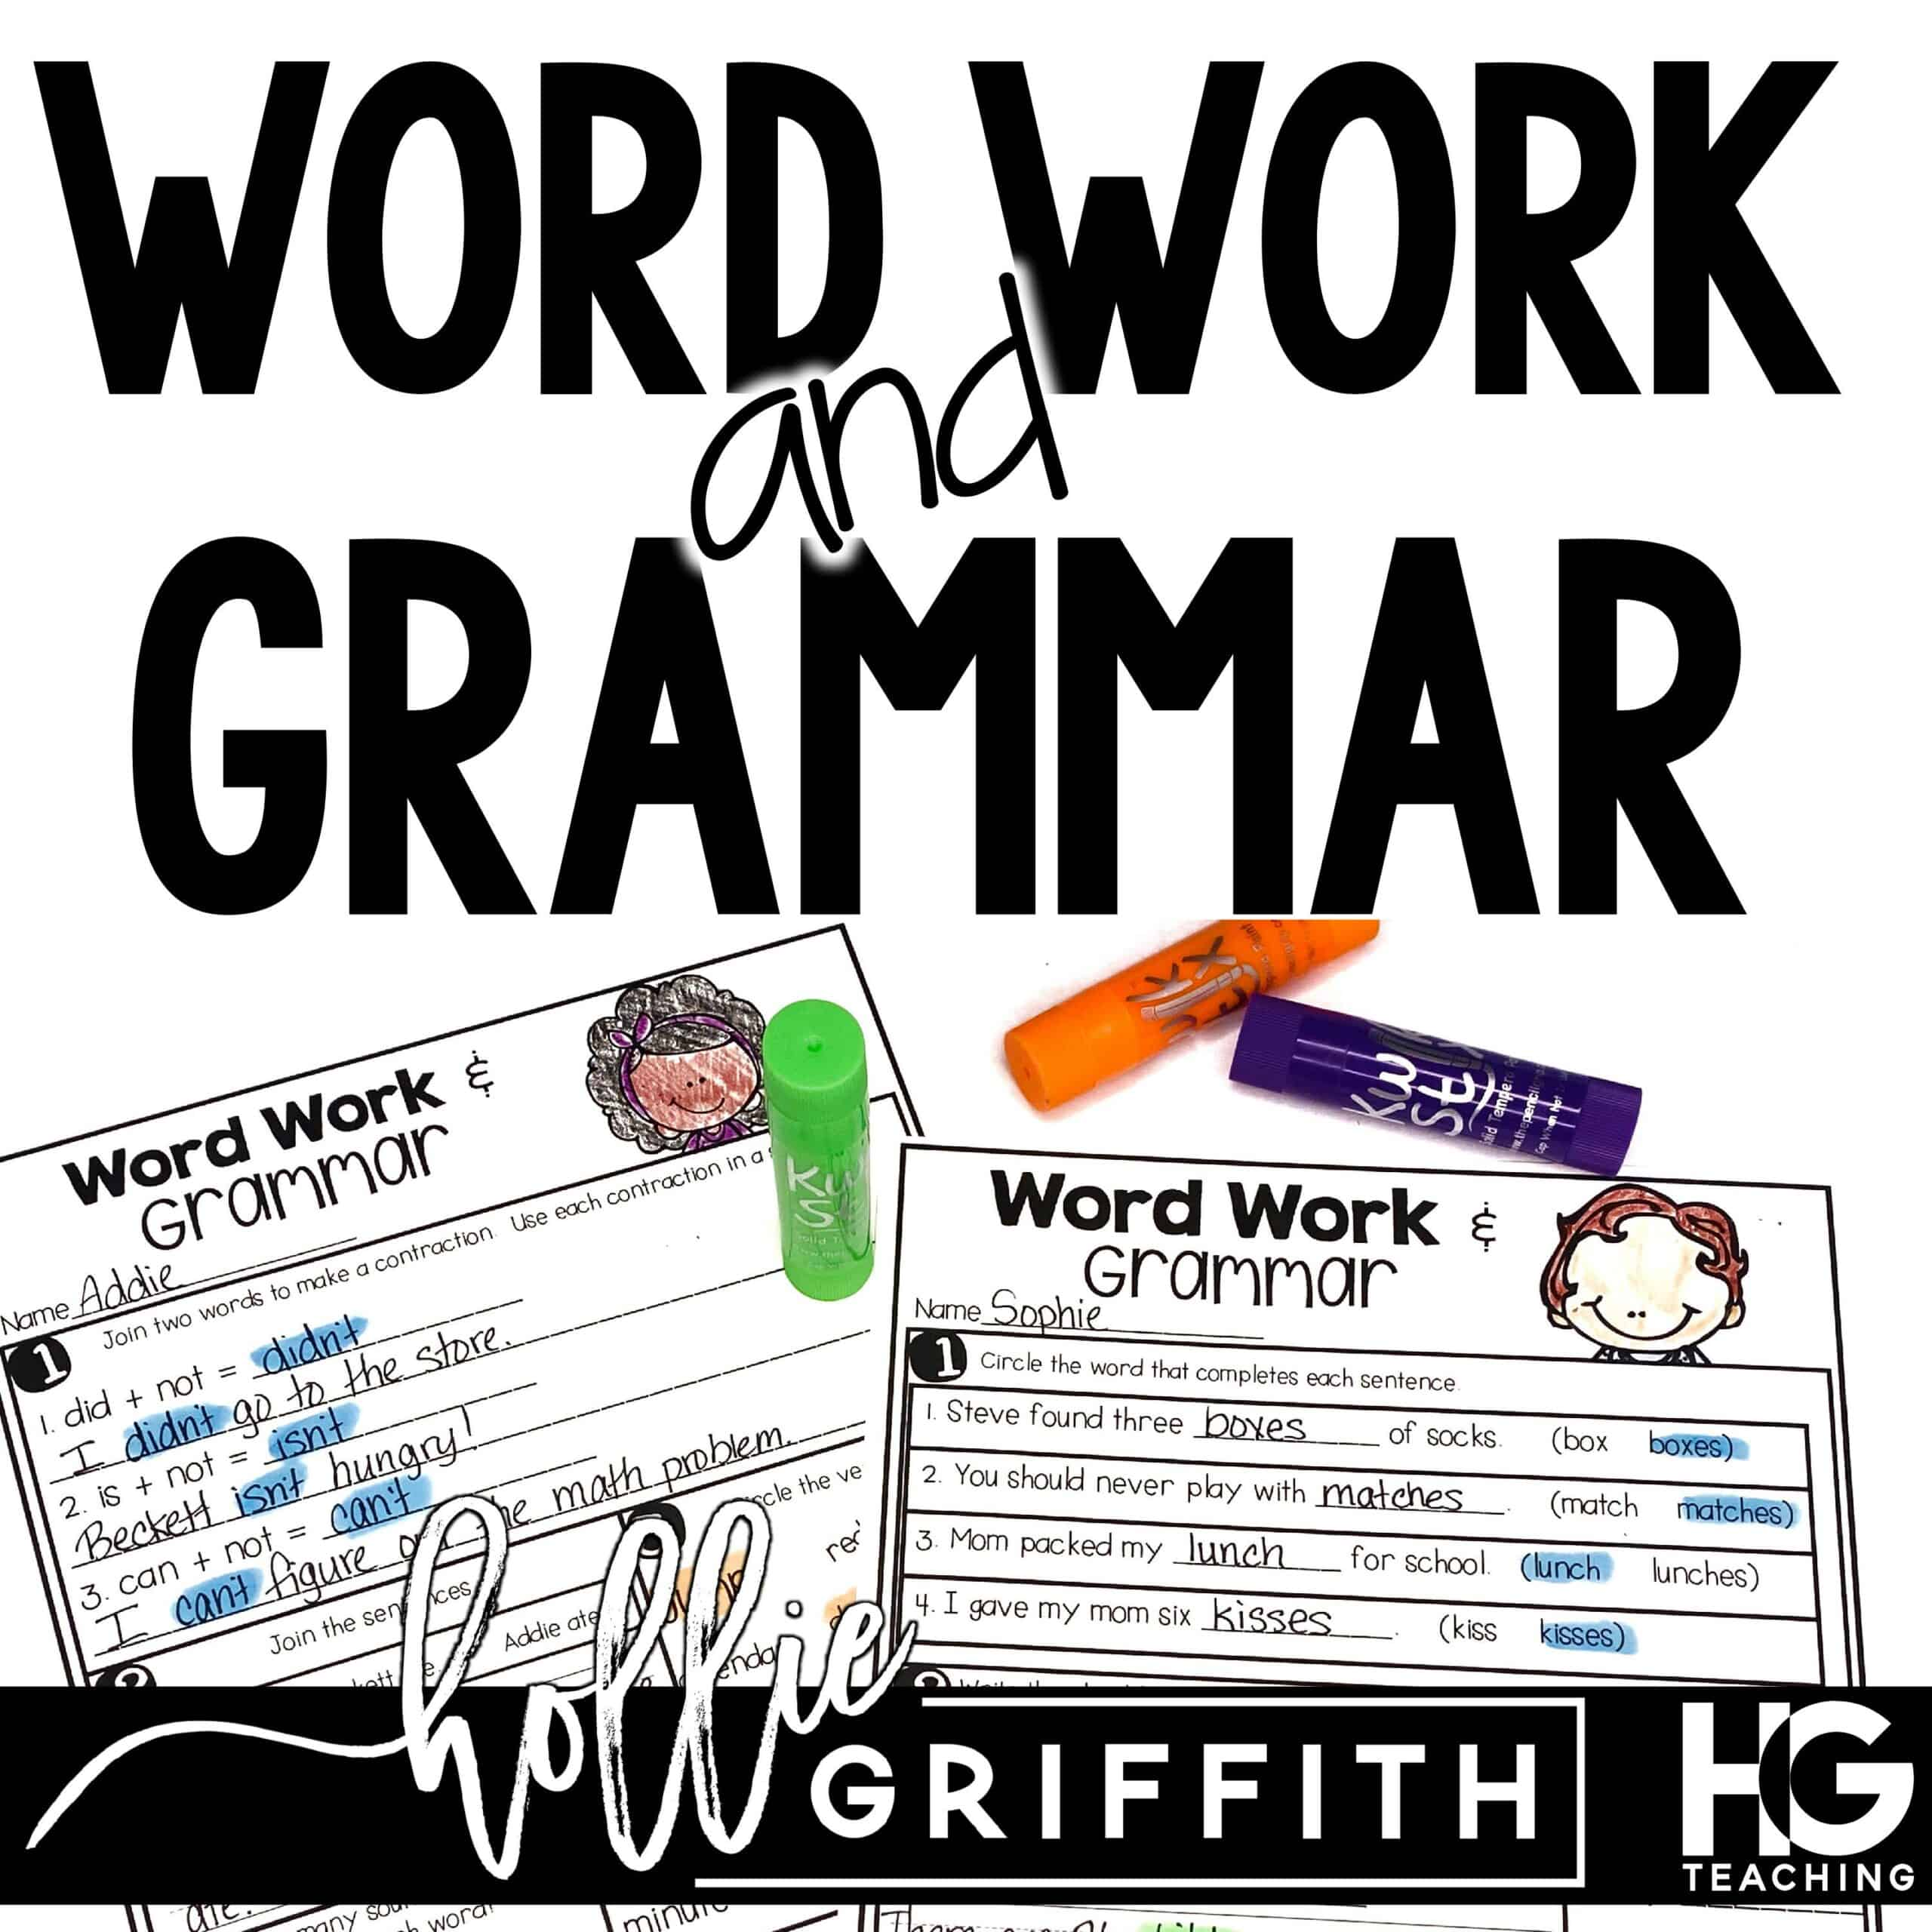 Word Work and Grammar Review Worksheets